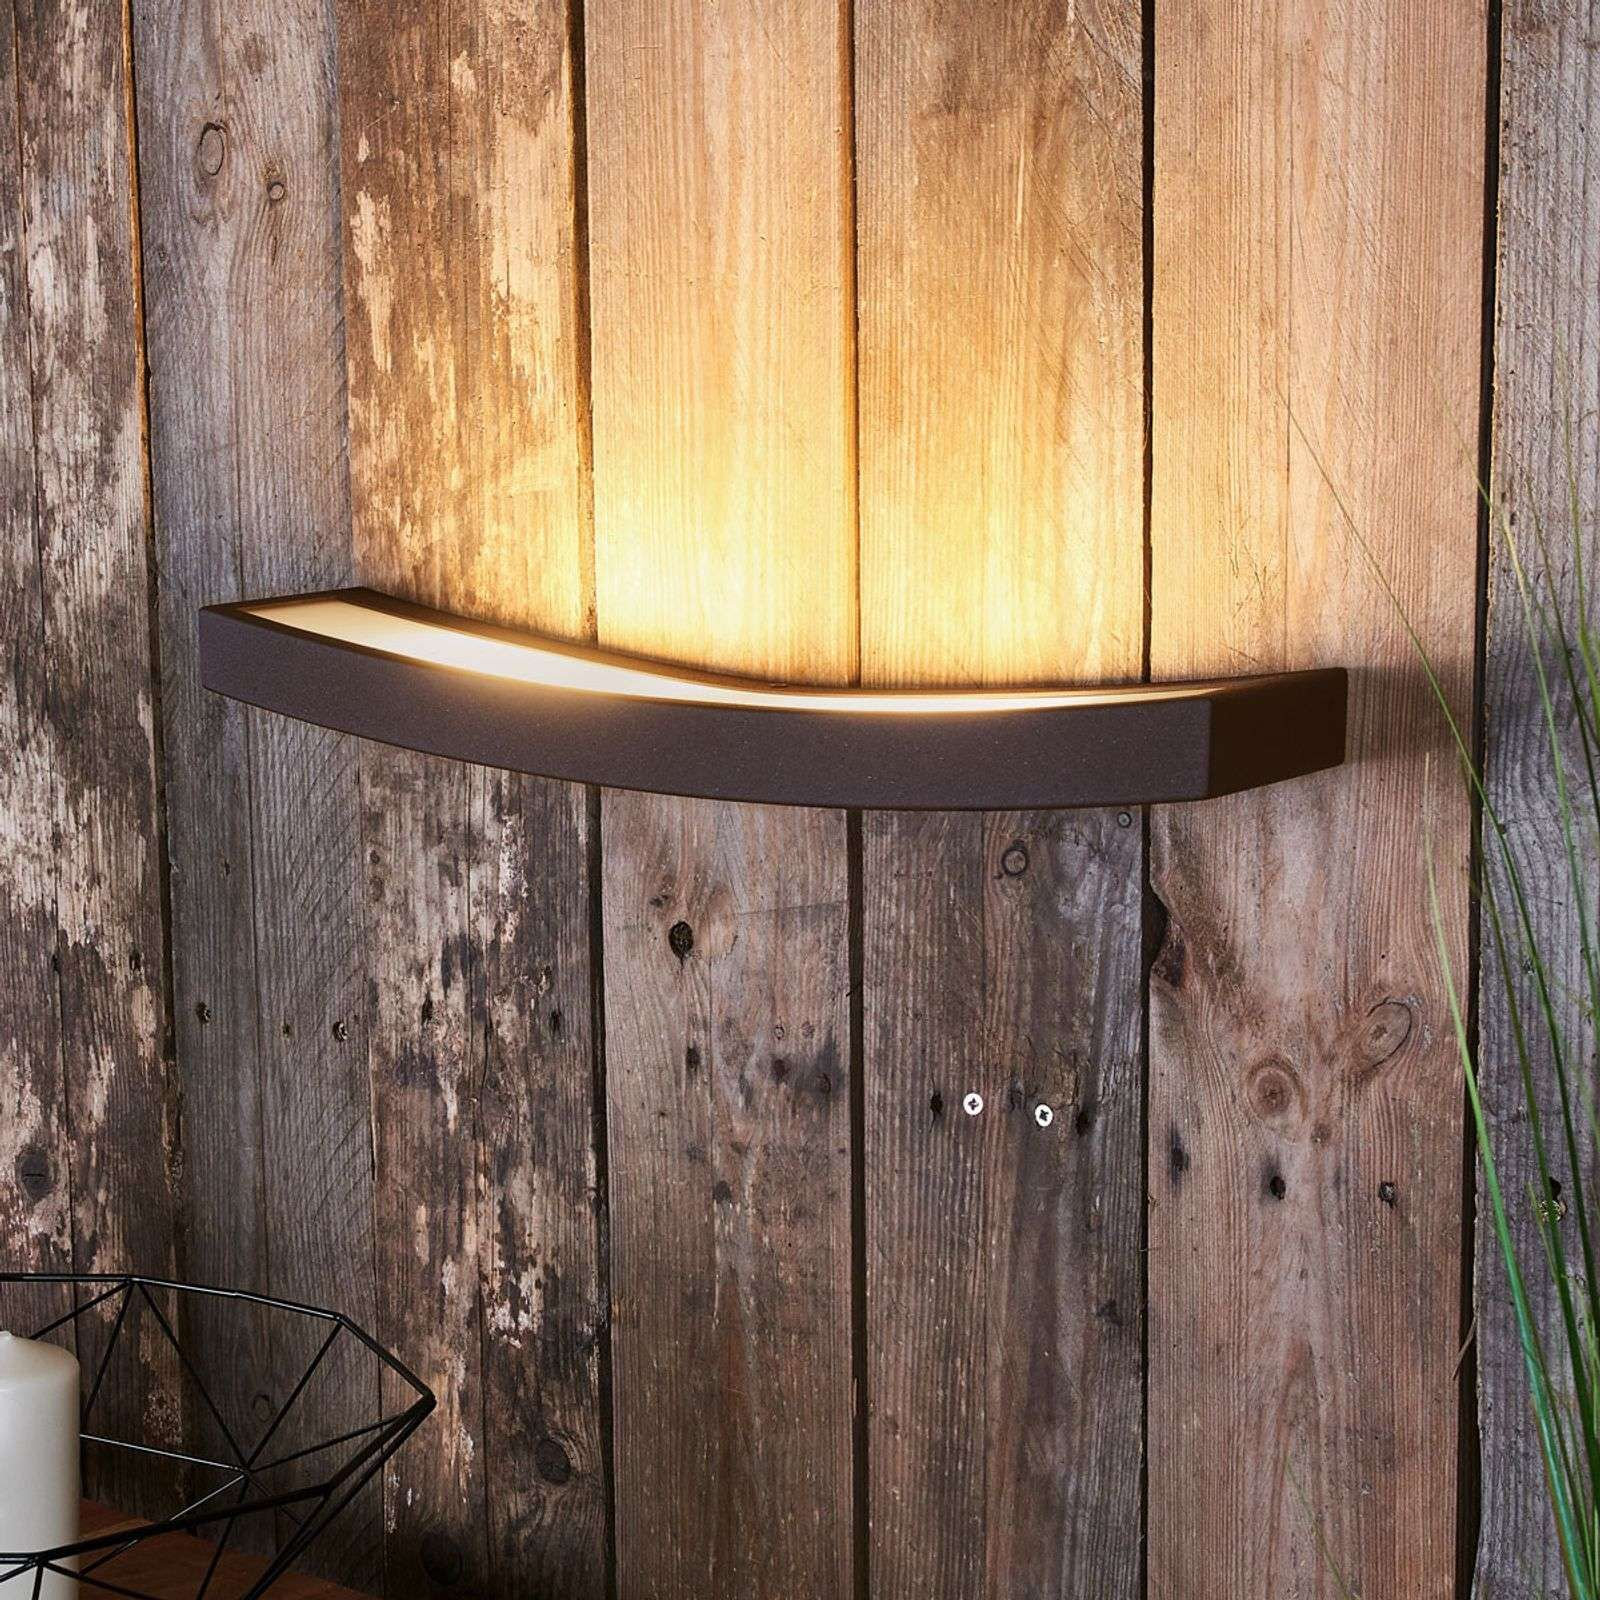 Applique Led Dolce Aspect Rouille Largeur 50 Cm Wandlamp Indirecte Verlichting Muurverlichting